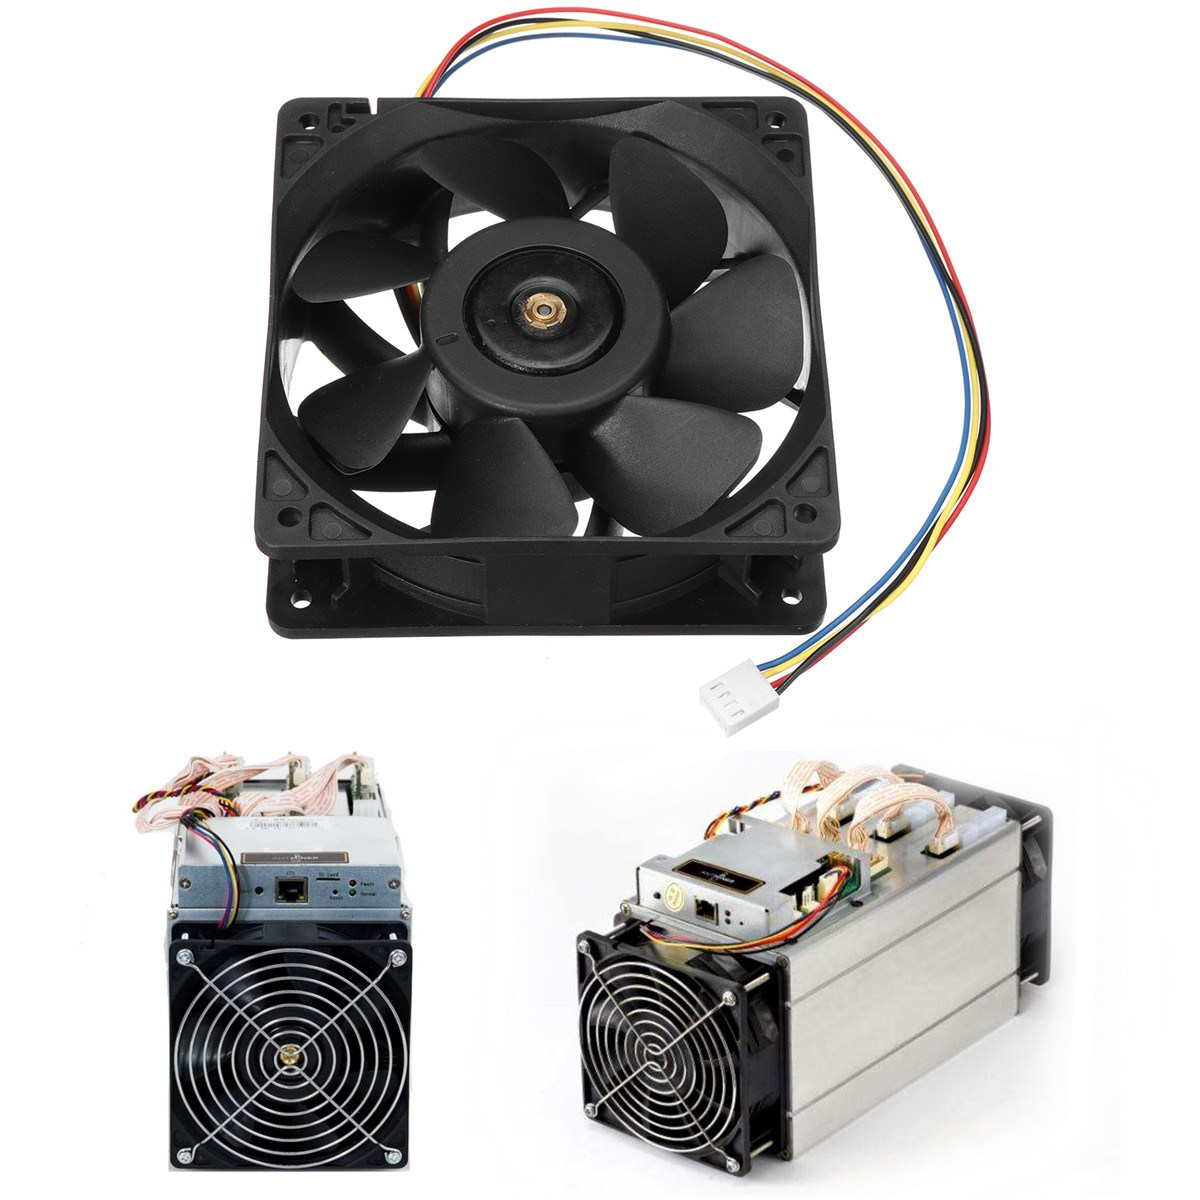 Cooling Fan 12V 2.7A 6000RPM Cooling Fan Replacement 4-Wire Connector For Antminer S7 S9 a3c40094788 delta afc0712de 7k1m 38010022 double ball 4 wire pwm12v cooling fan for fujitsu for siemens for primergy rx300 s5 s6